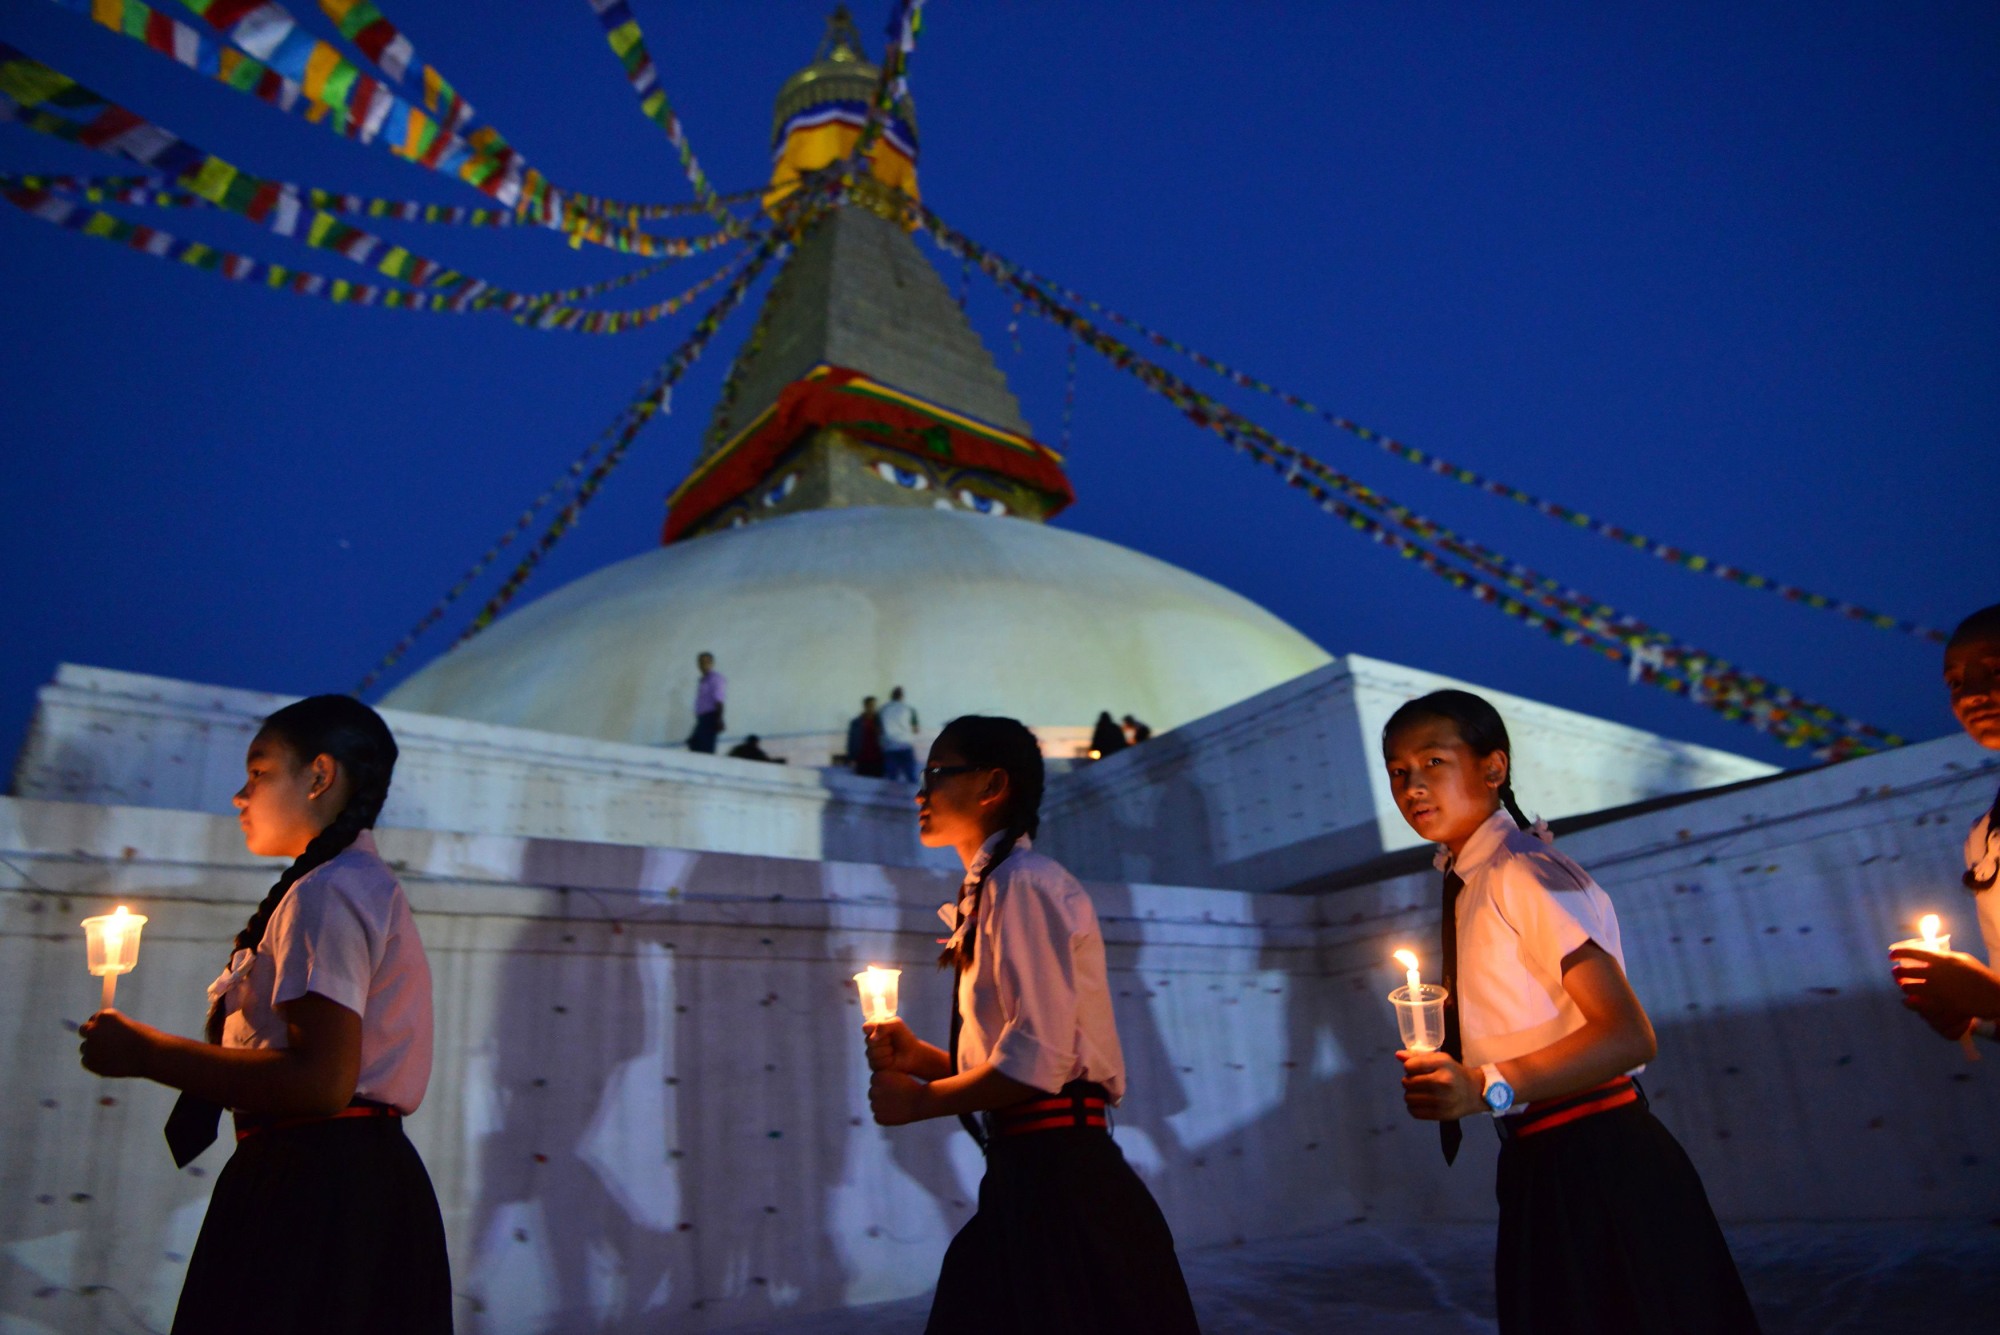 Nepalese schoolchildren take part in an April 25 ceremony in Kathmandu for the victims of the massive earthquake that struck the Himalayan nation on that day in 2015, claiming the lives of nearly 9,000 people. | AFP-JIJI